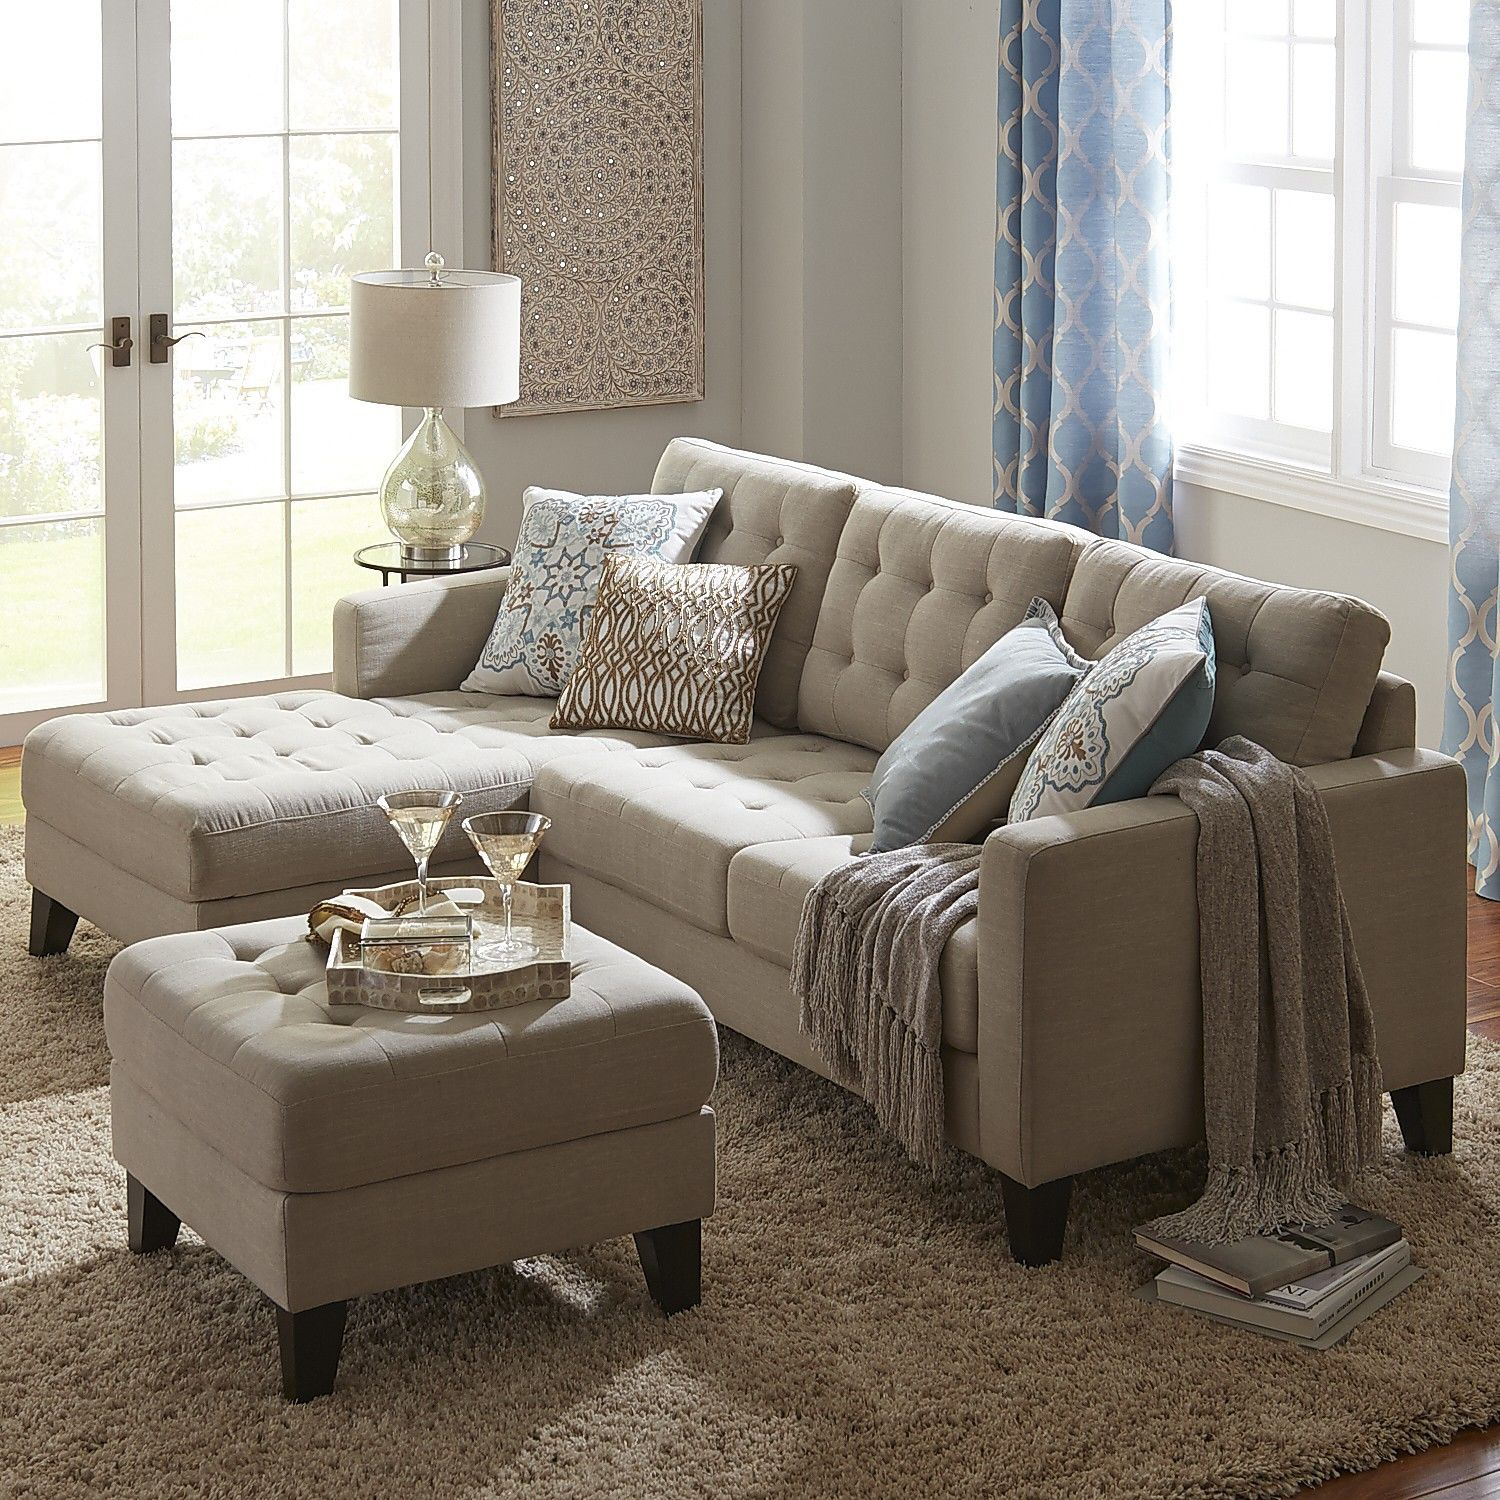 glamorous pier one living room | Build Your Own Nyle Sectional - Stone | Pier 1 Imports ...